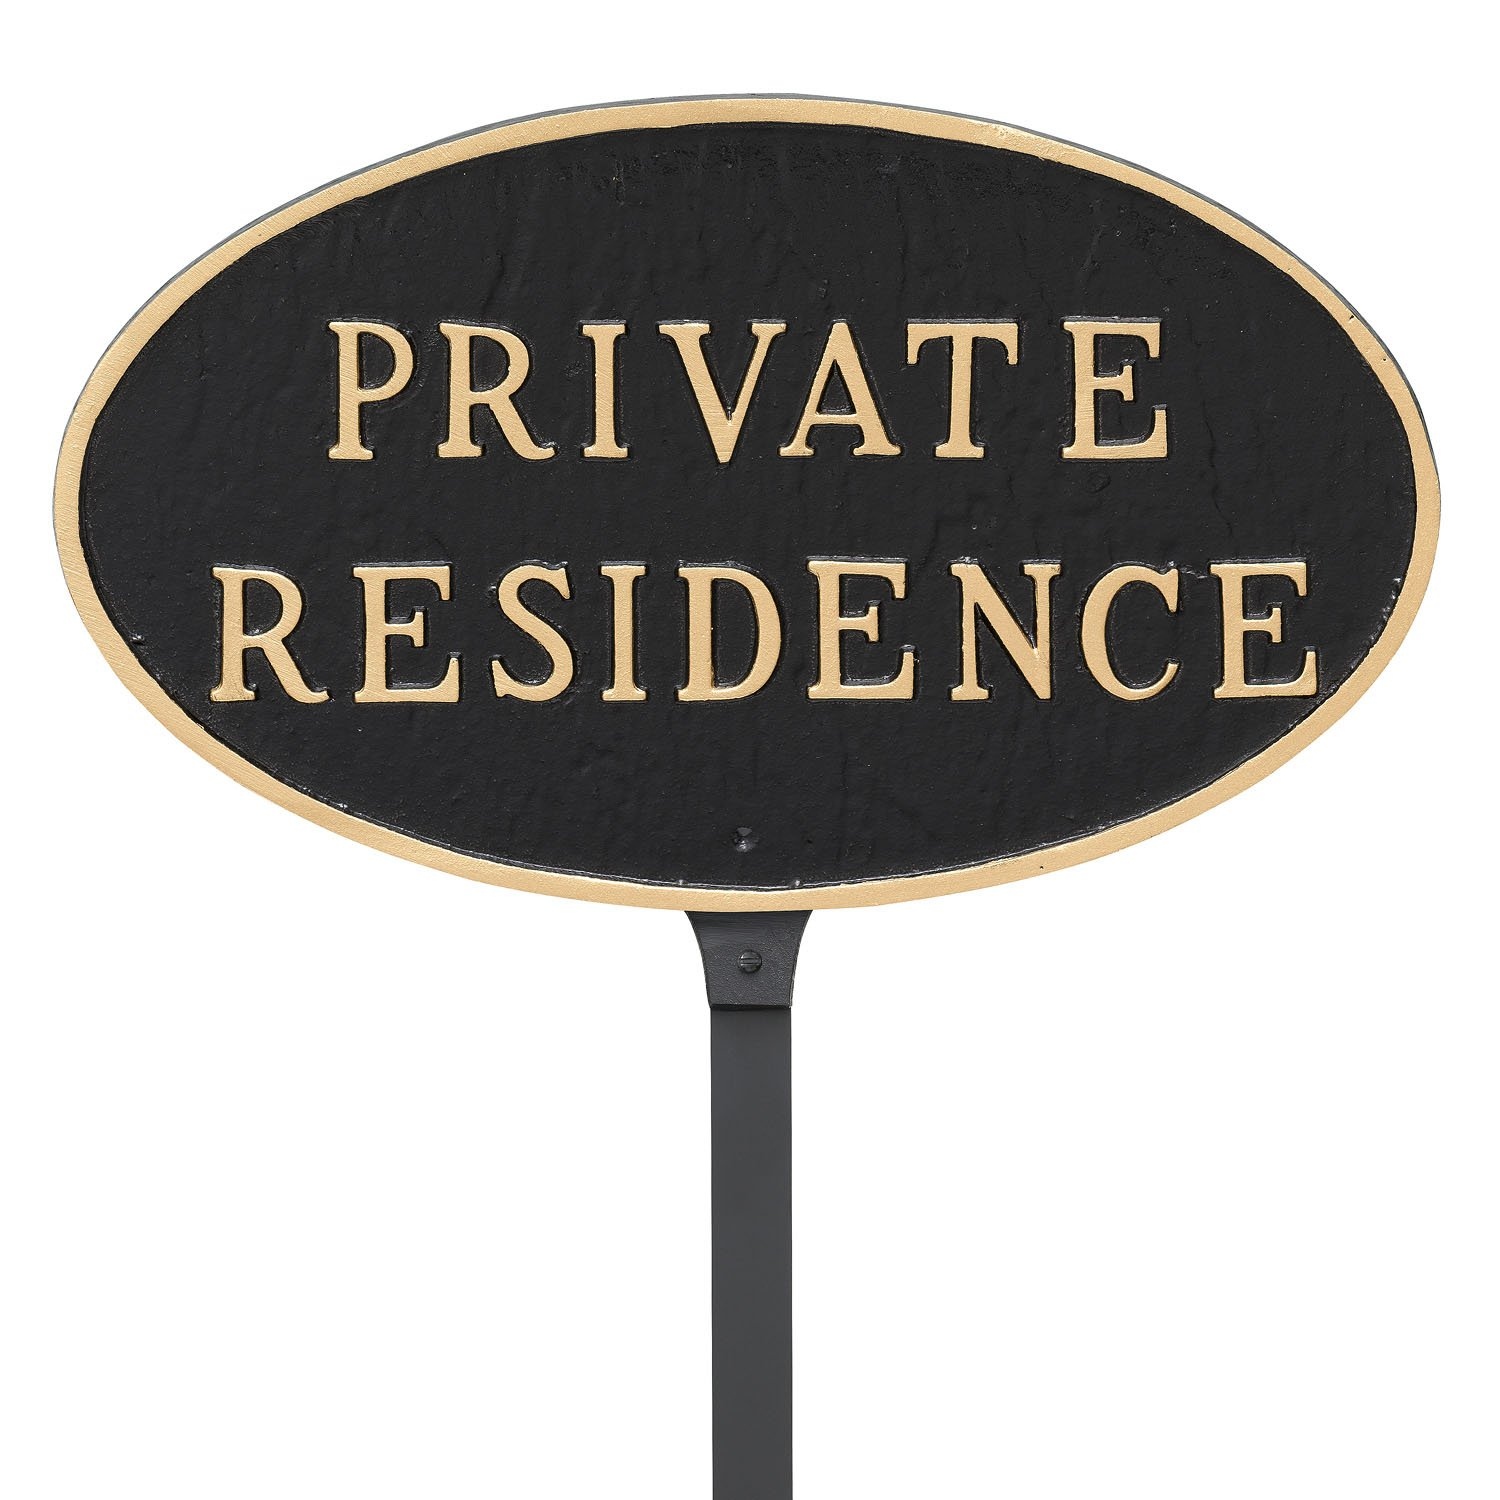 Montague Metal Products 6 x 10-Inch Oval Private Residence Plaque with 23-Inch Lawn Stake, Black/Gold by Montague Metal Products